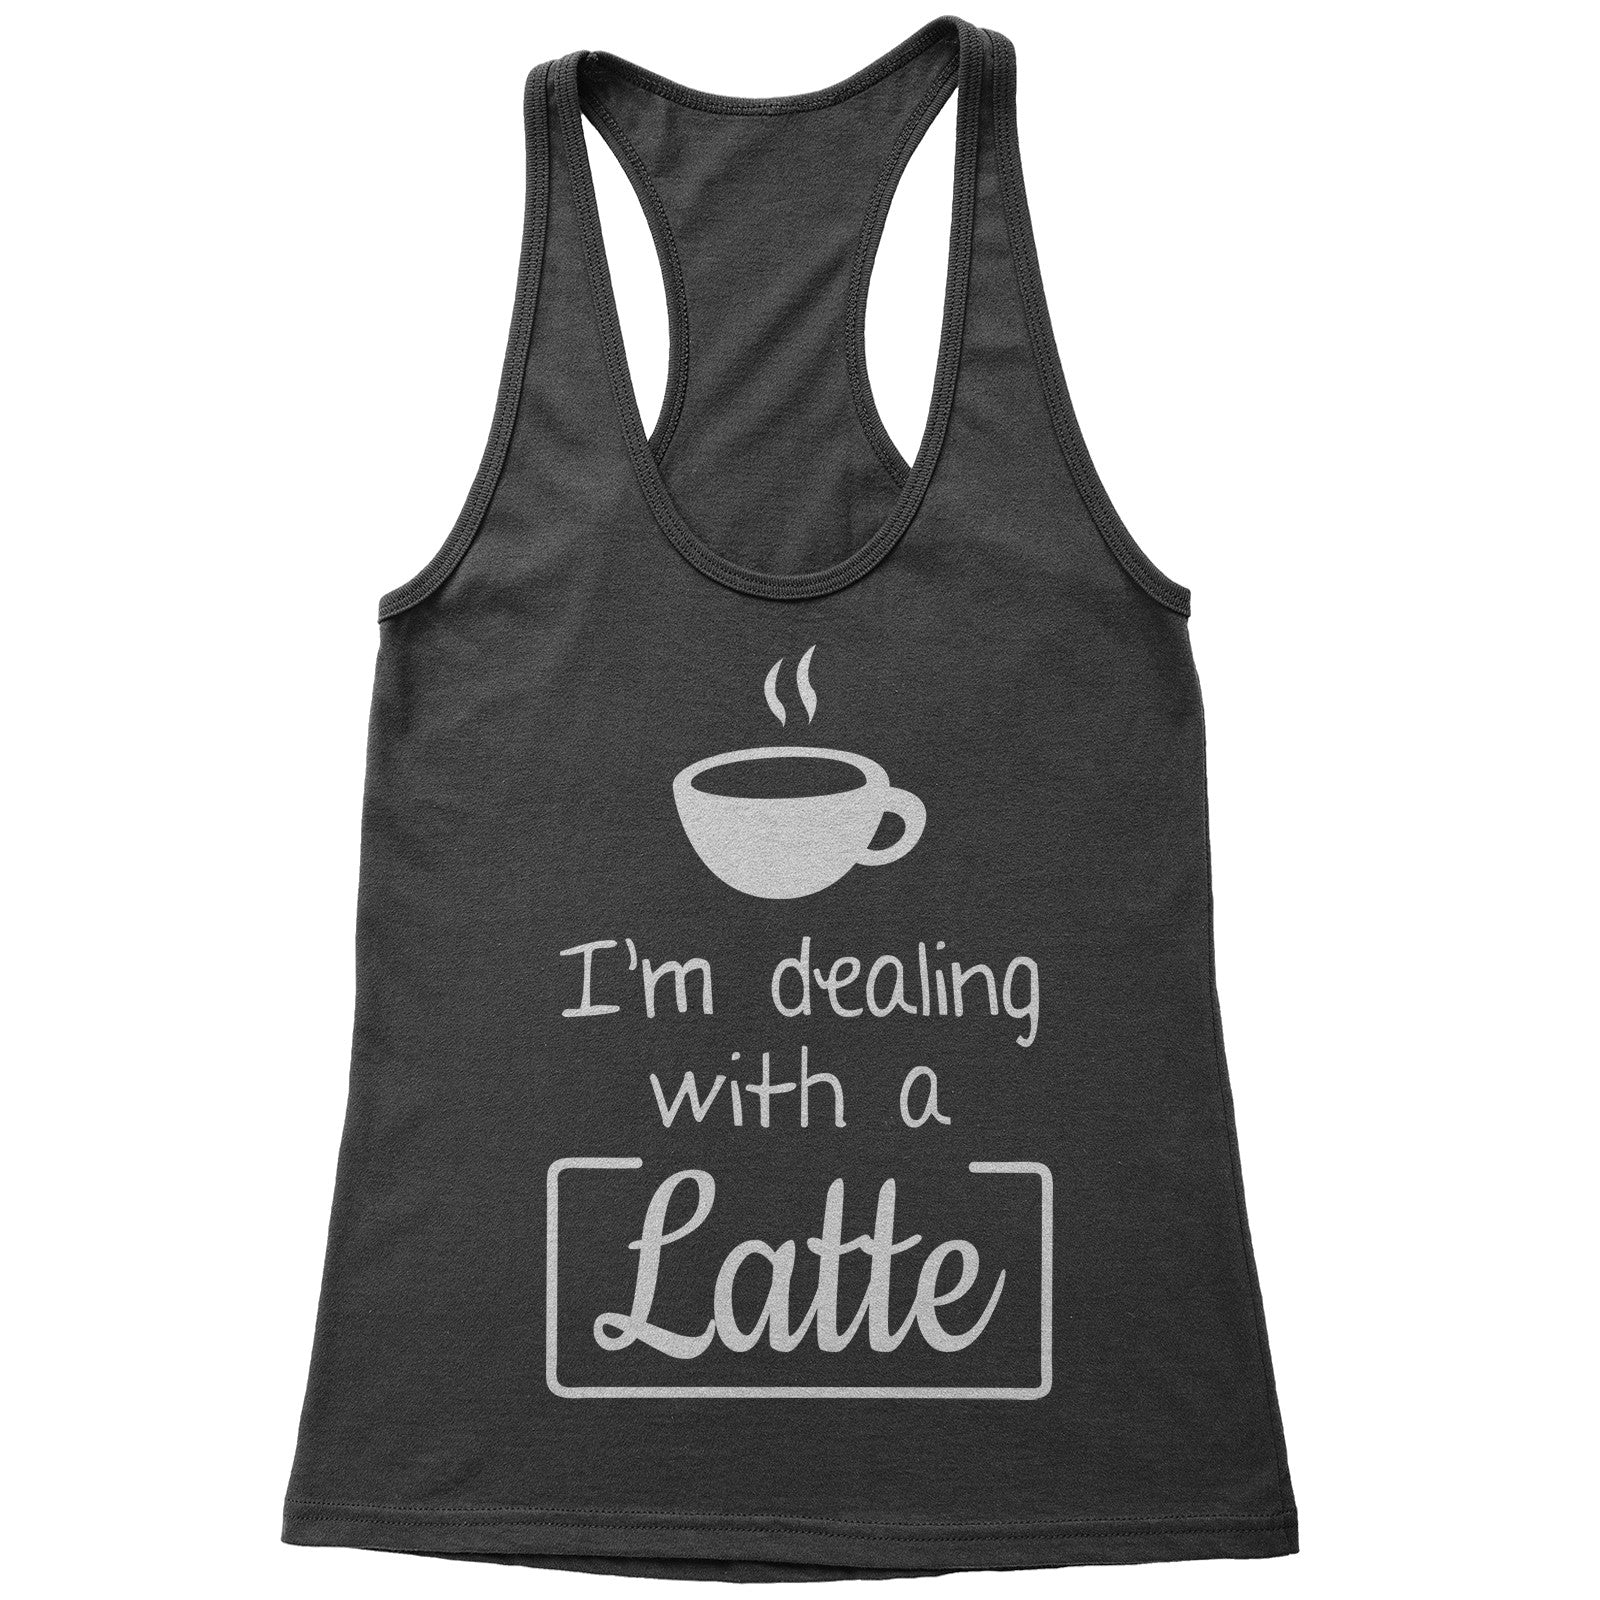 Dealing with a Latte Racerback Tank Top